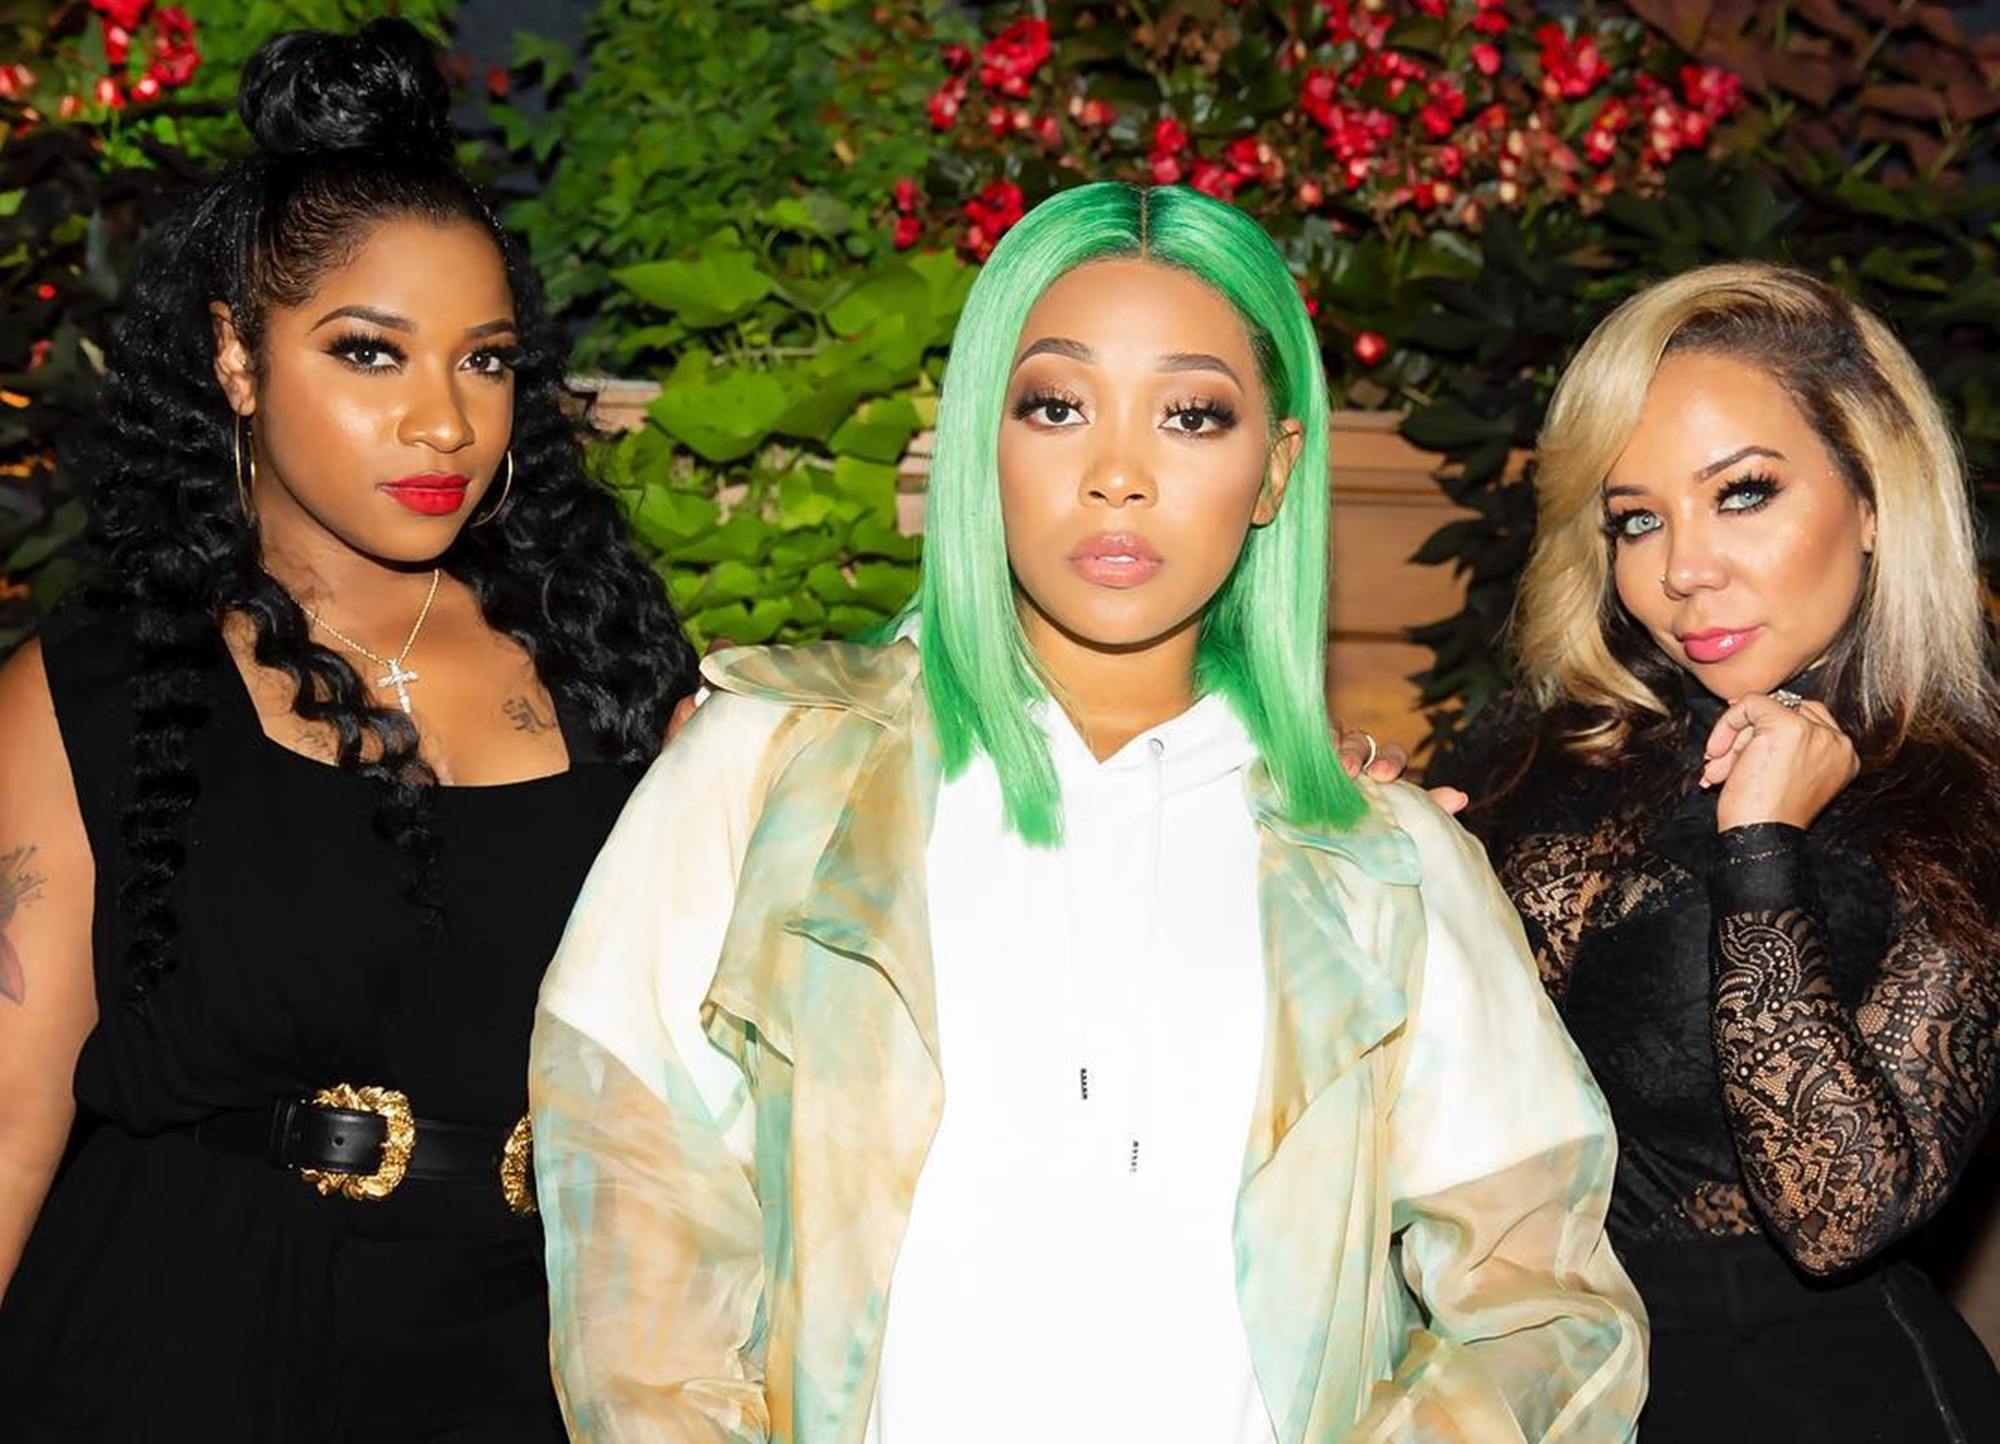 Toya Wright, Monica Brown, And Tiny Harris Rock All-Black Outfits: 'Friends That Slay Together, Stay Together' - See The Pics